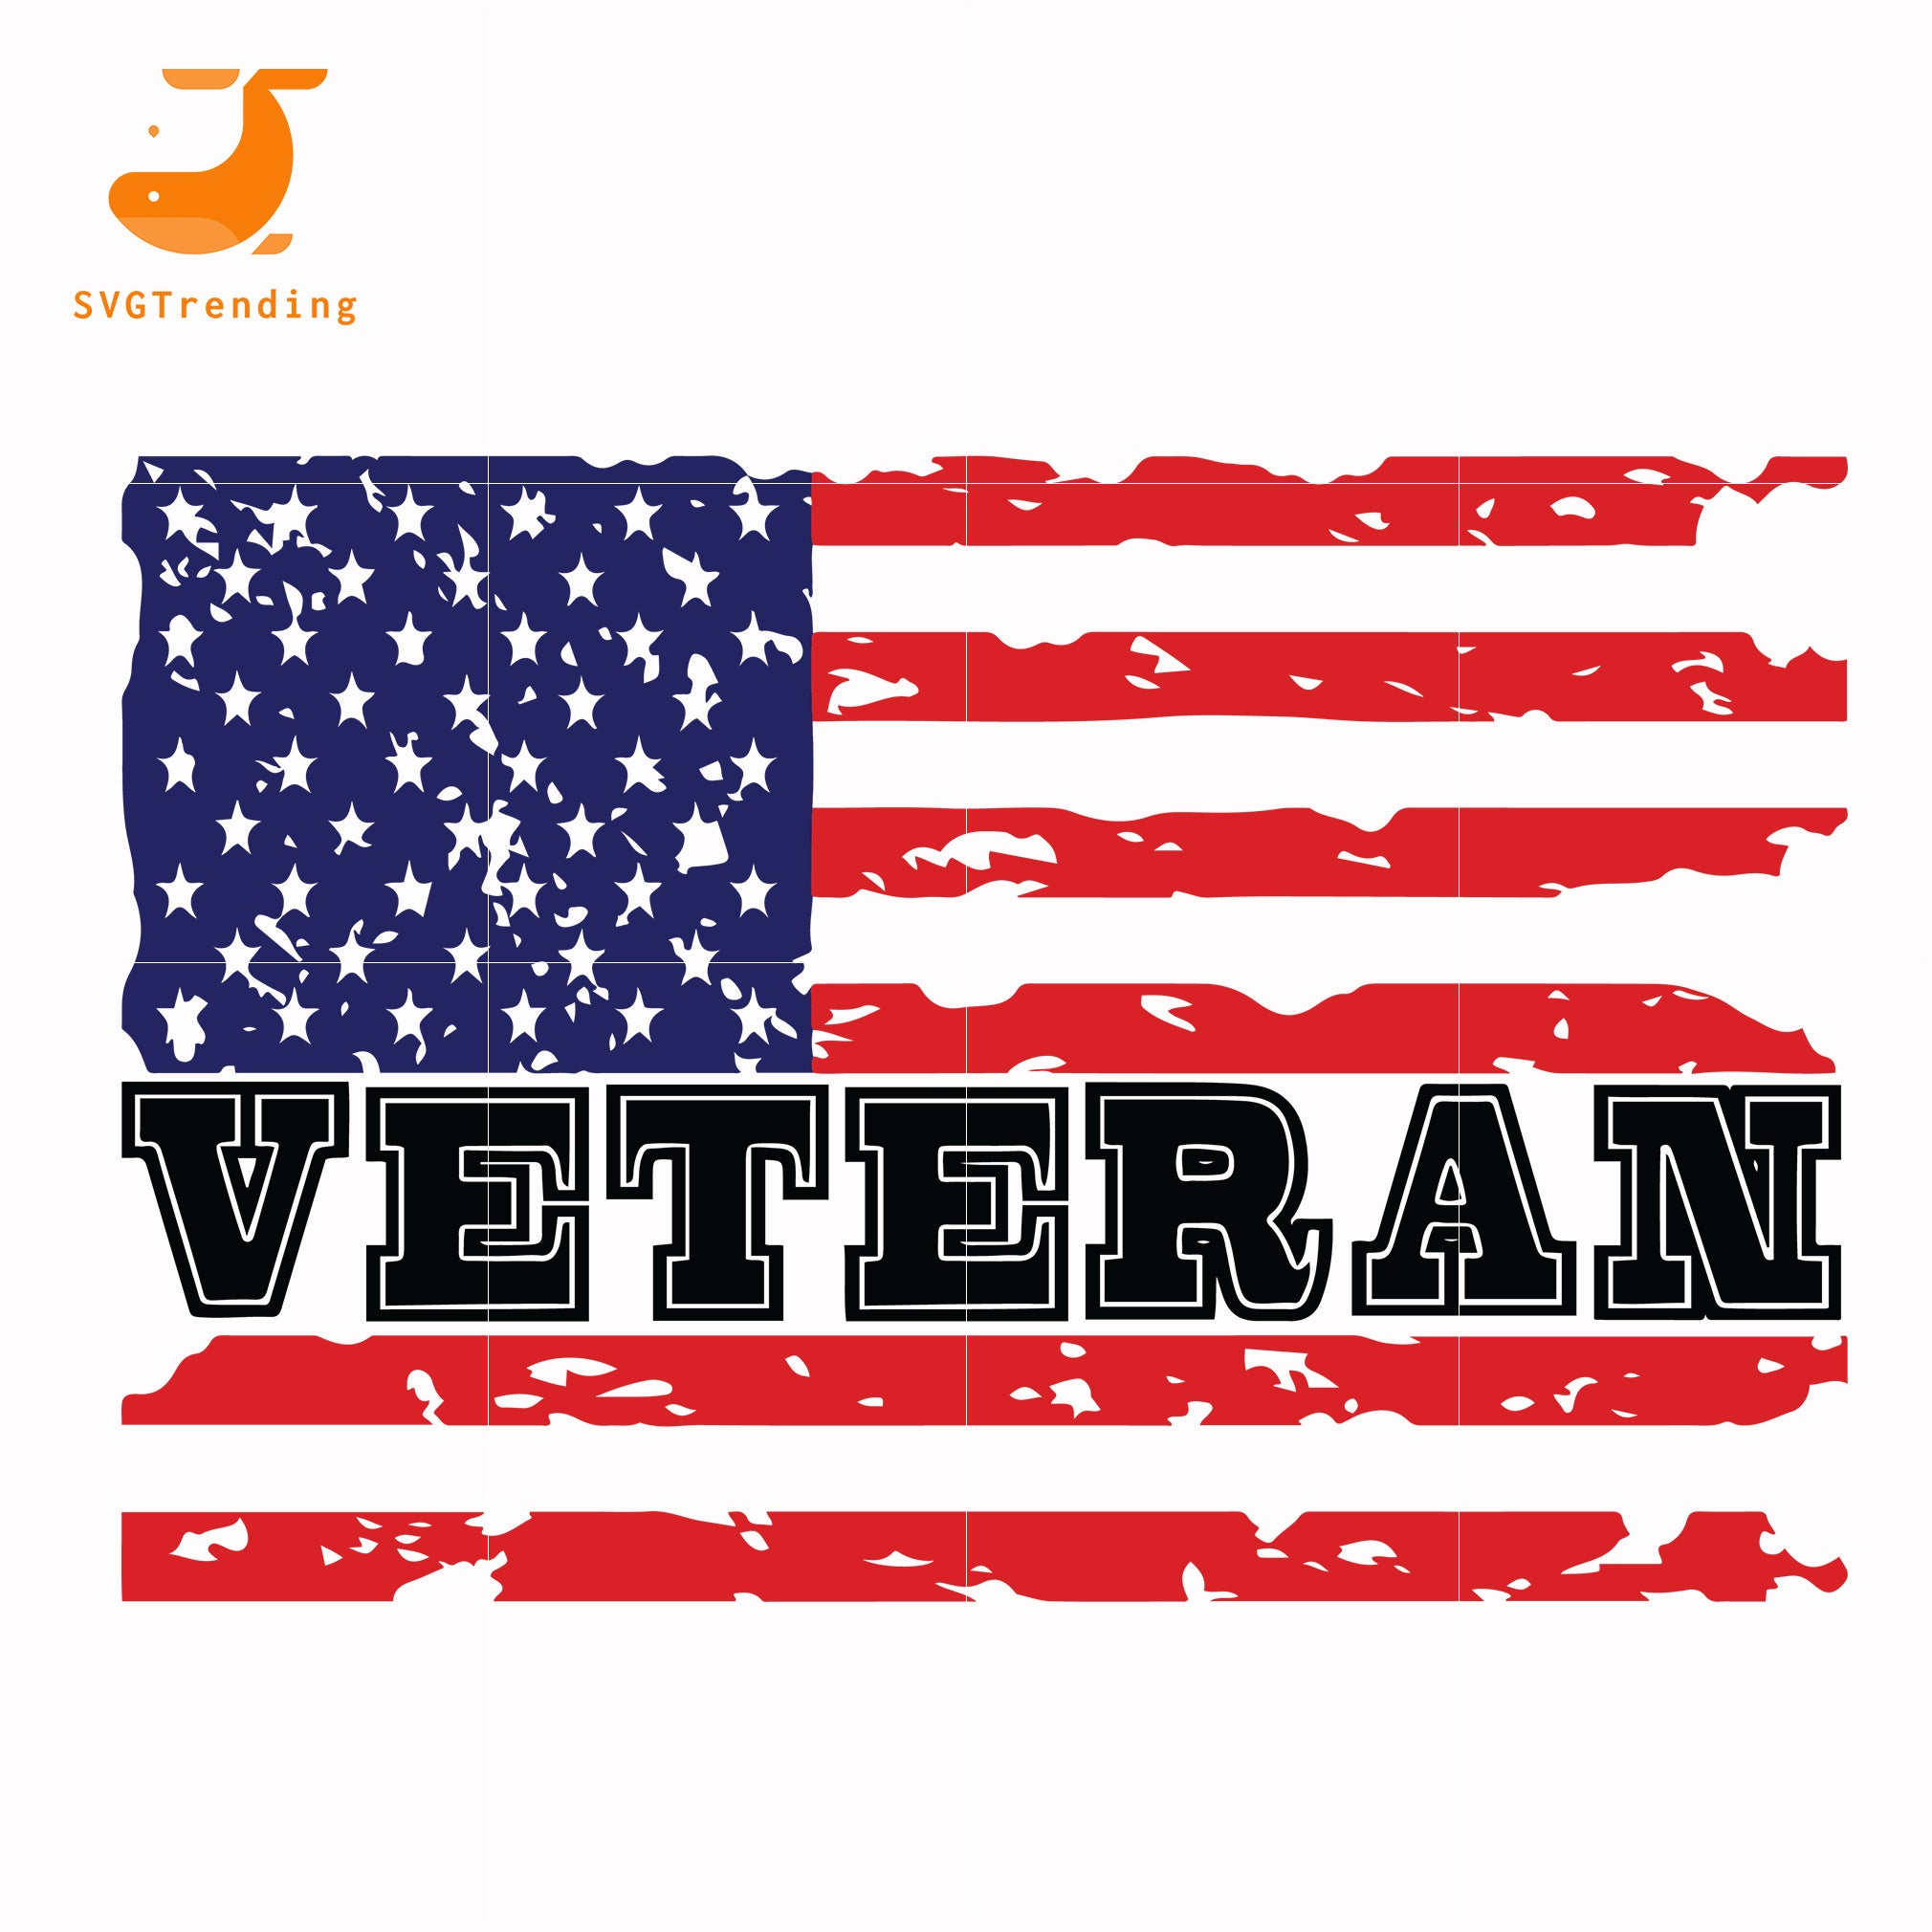 Veteran svg, png, dxf, eps, digital file